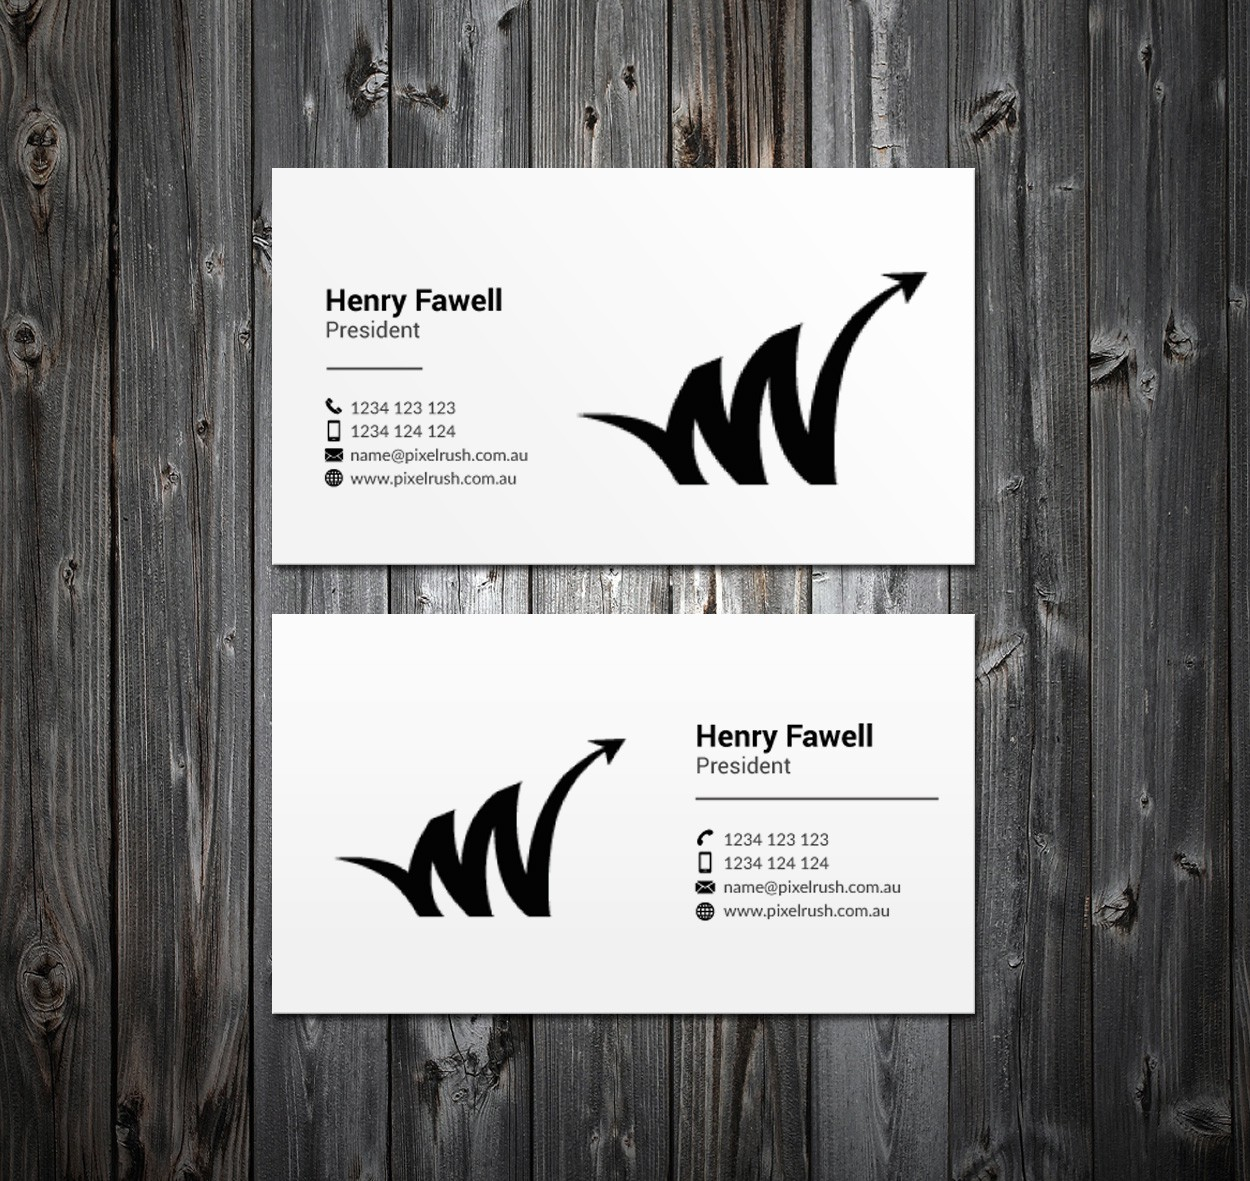 Business Card for Leading Digital Marketing Agency